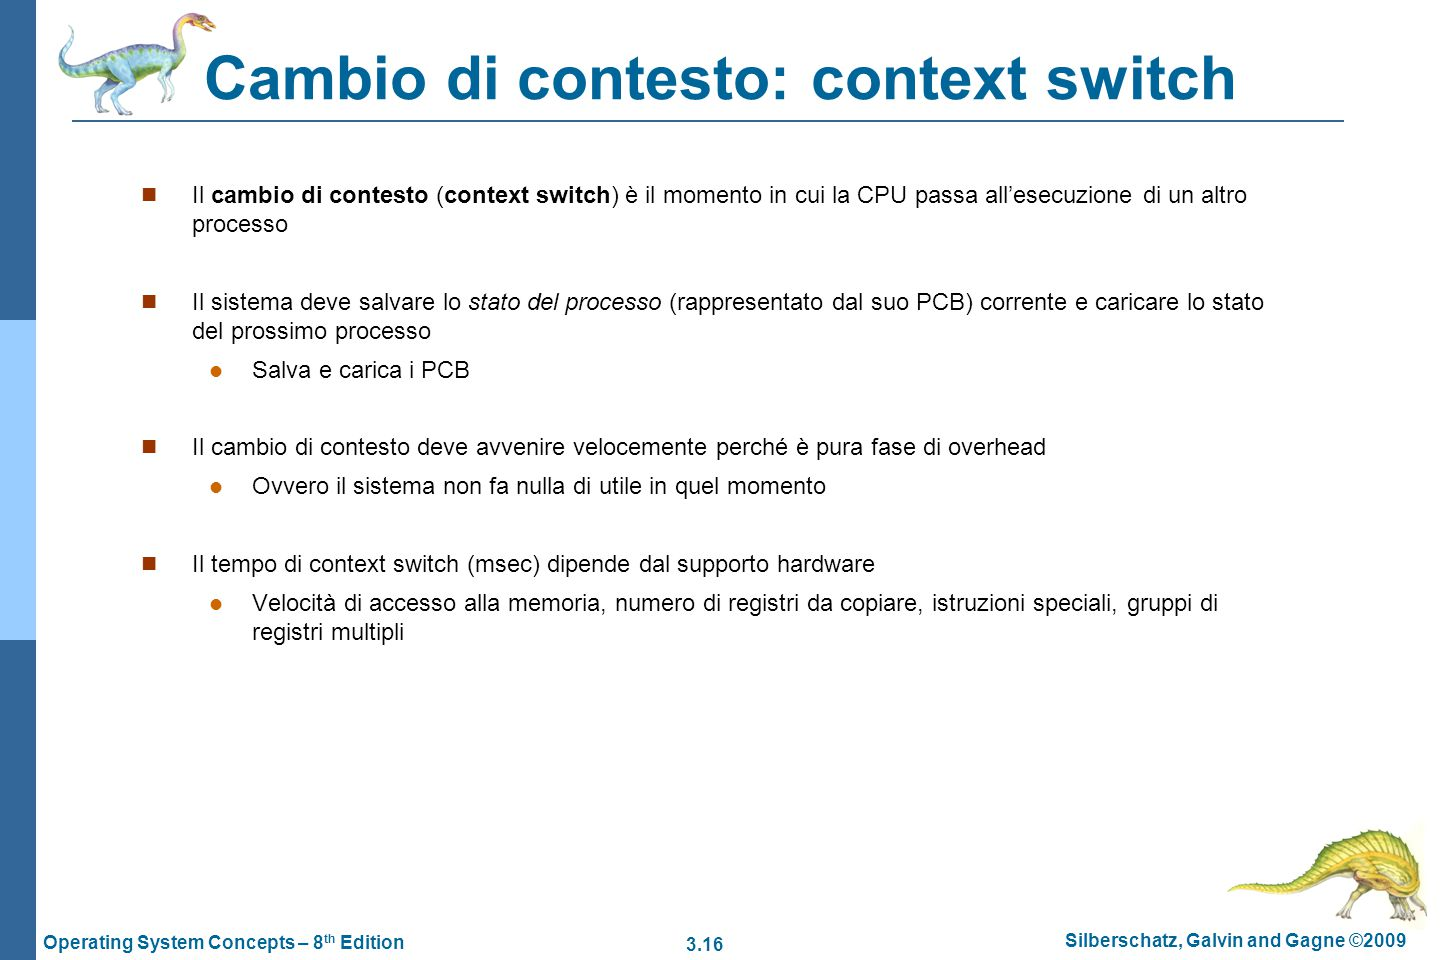 Cambio di contesto: context switch